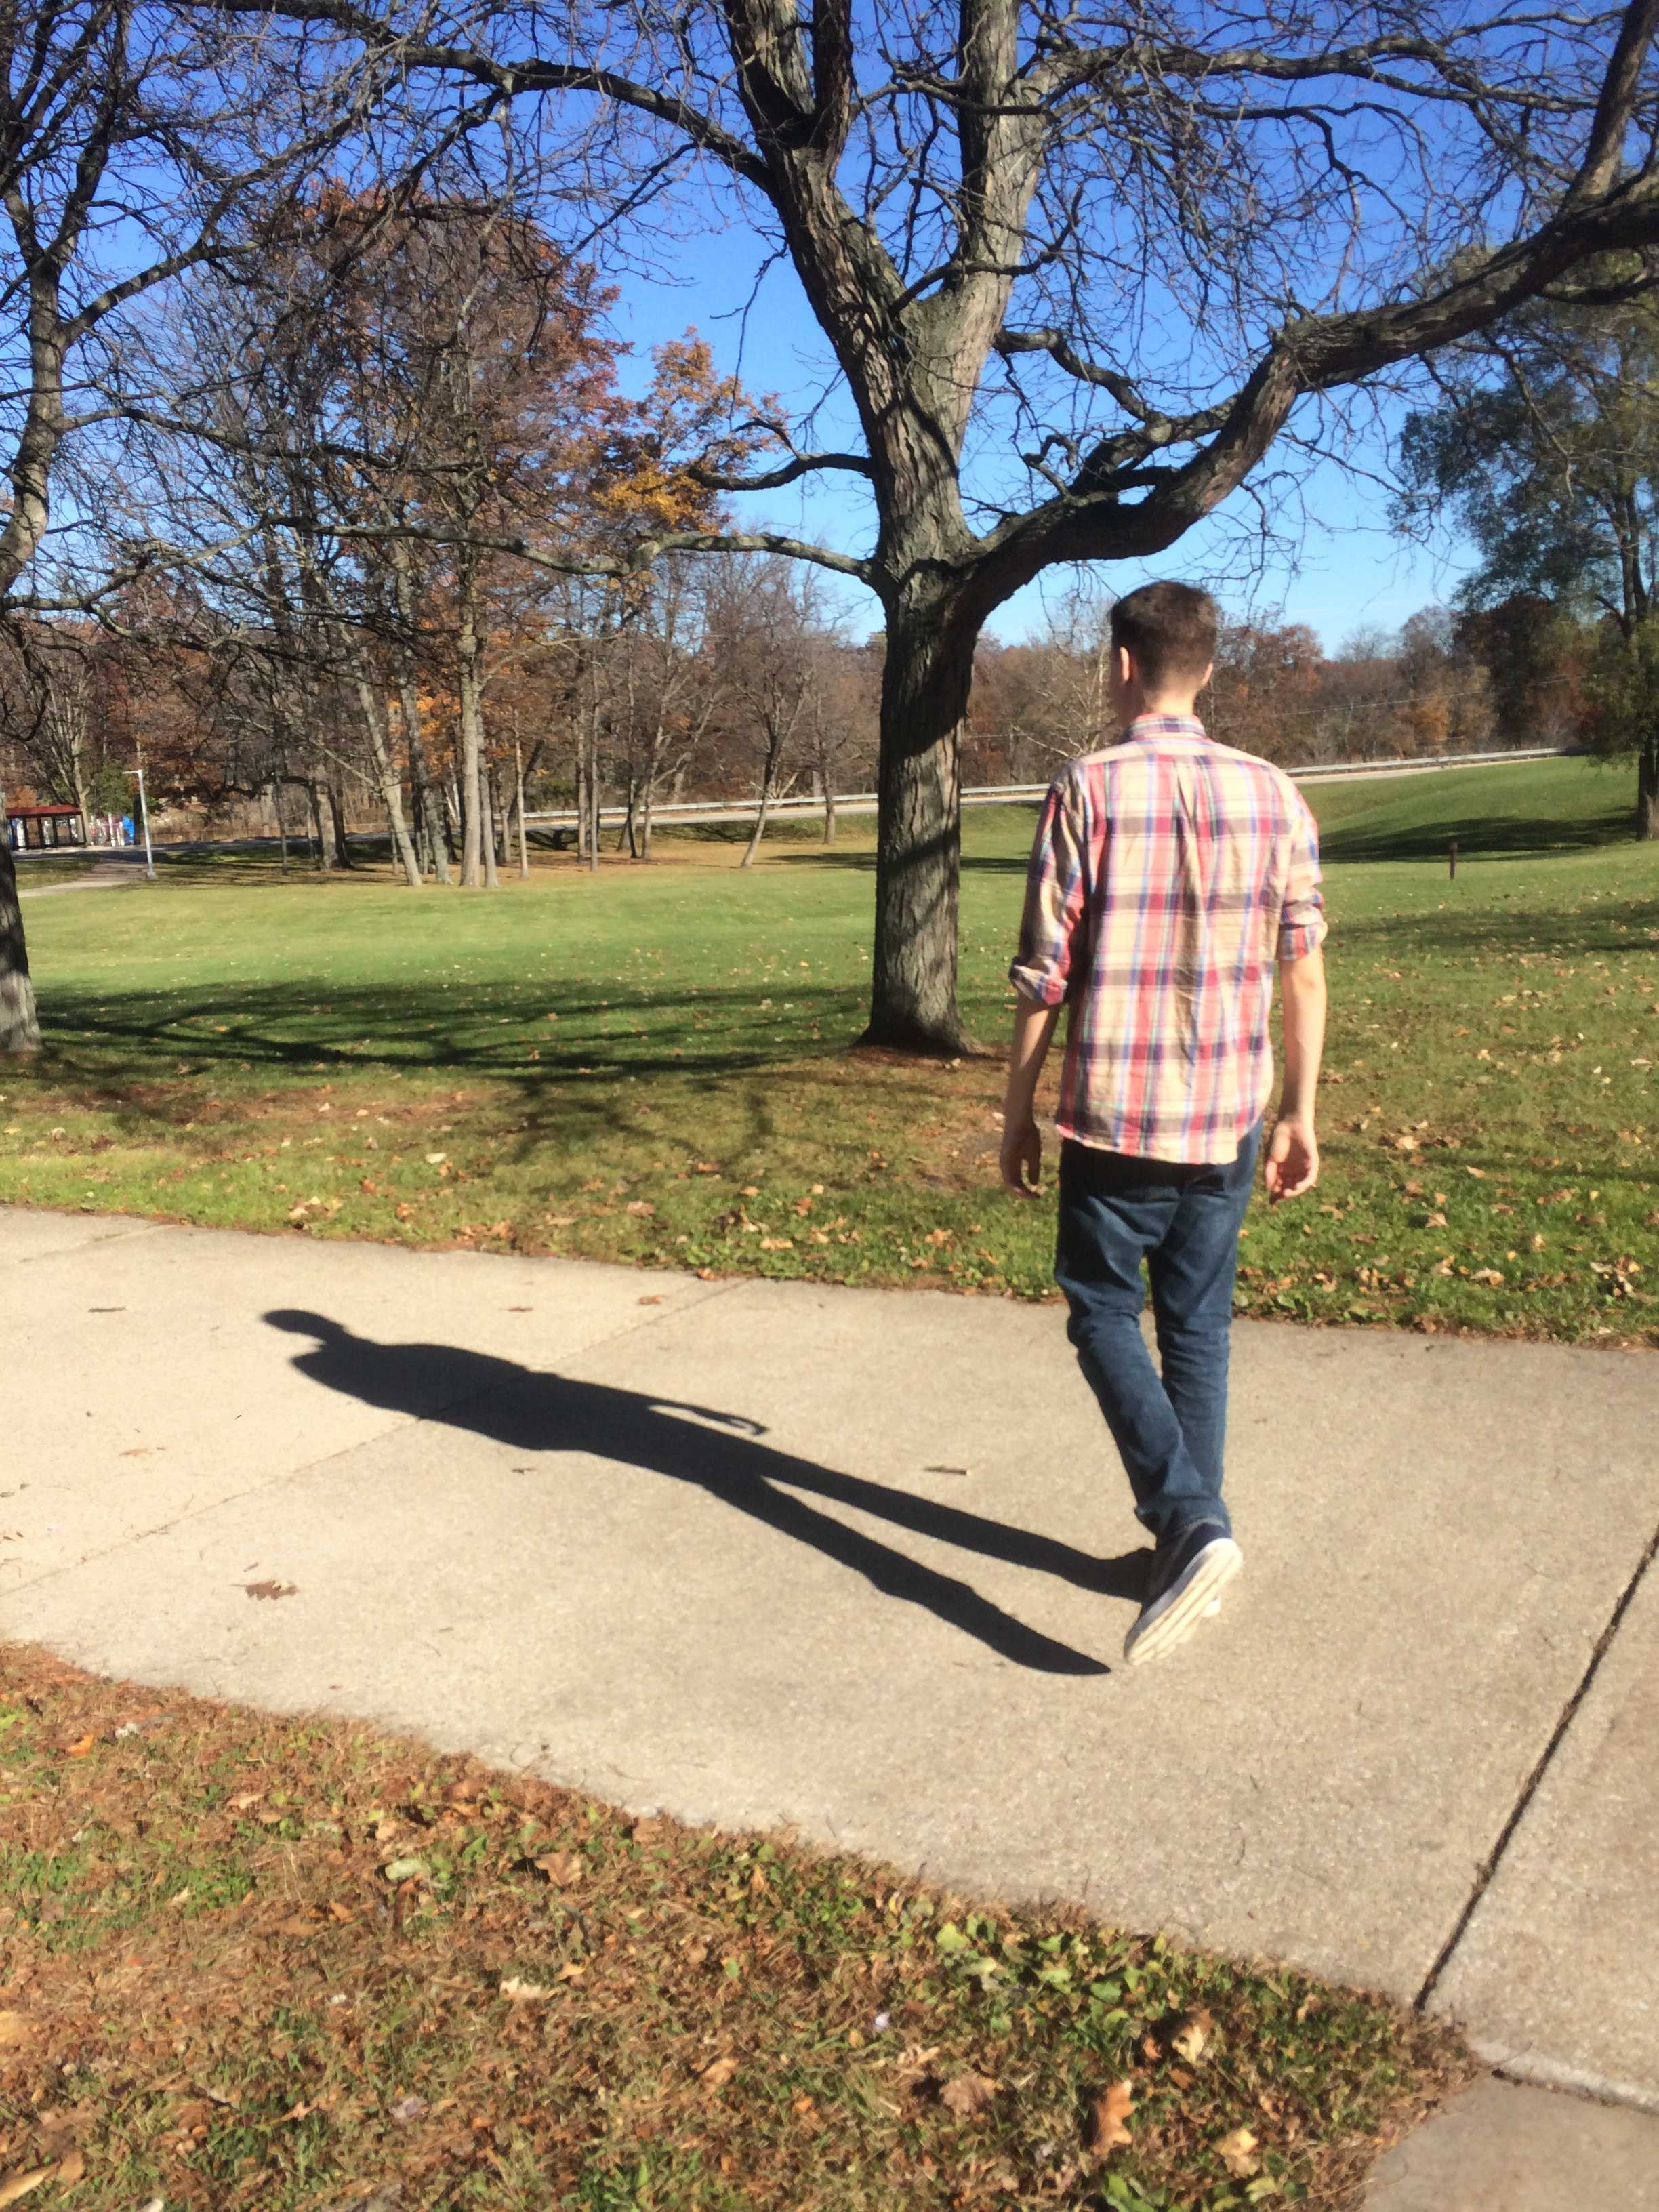 Knight Life staff member Clayton Barker, enjoys the pleasant November air while it lasts. Soon the Michigan cold will strike.